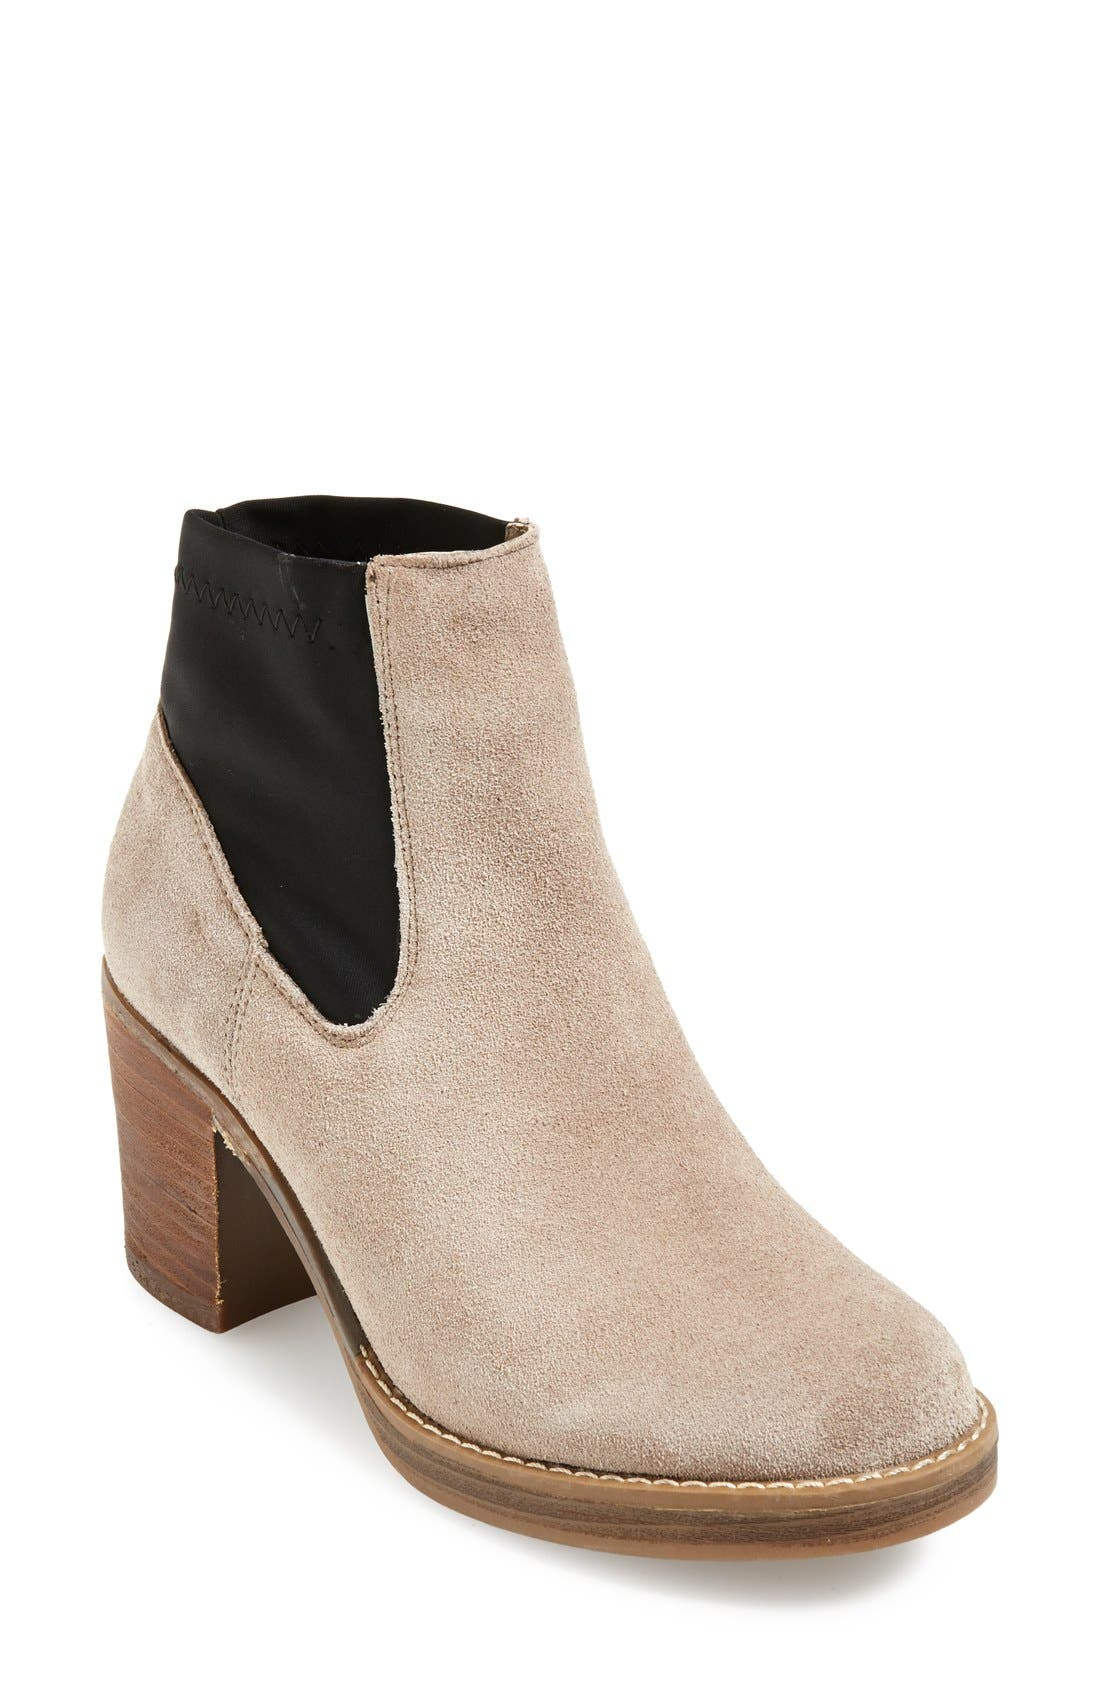 Alternate Image 1 Selected - MTNG Originals 'Becky' Suede Chelsea Boot (Women)